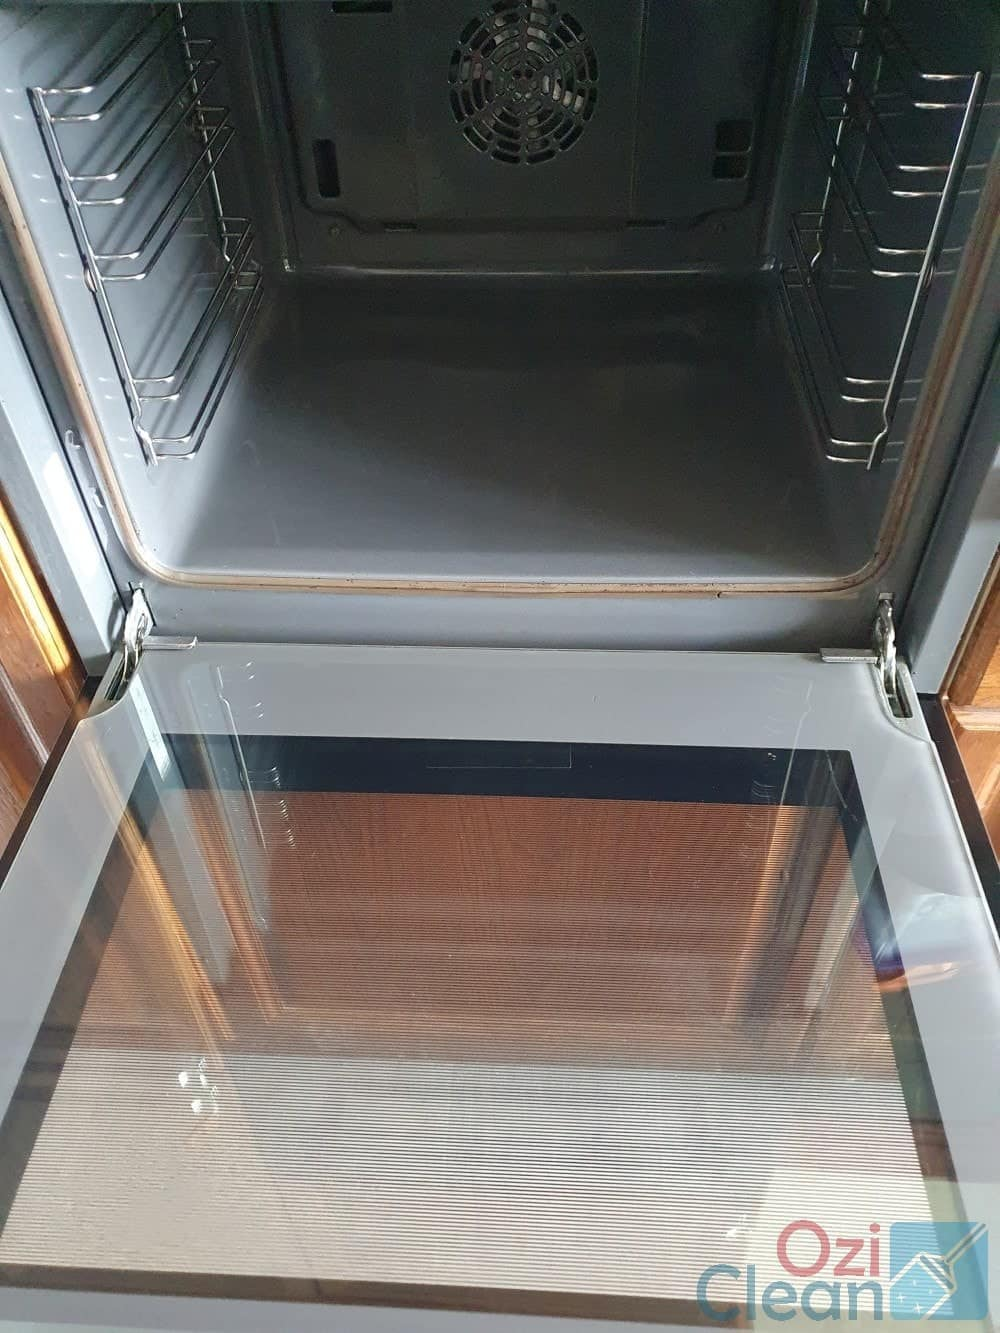 Oven Cleaning Hertfordshire